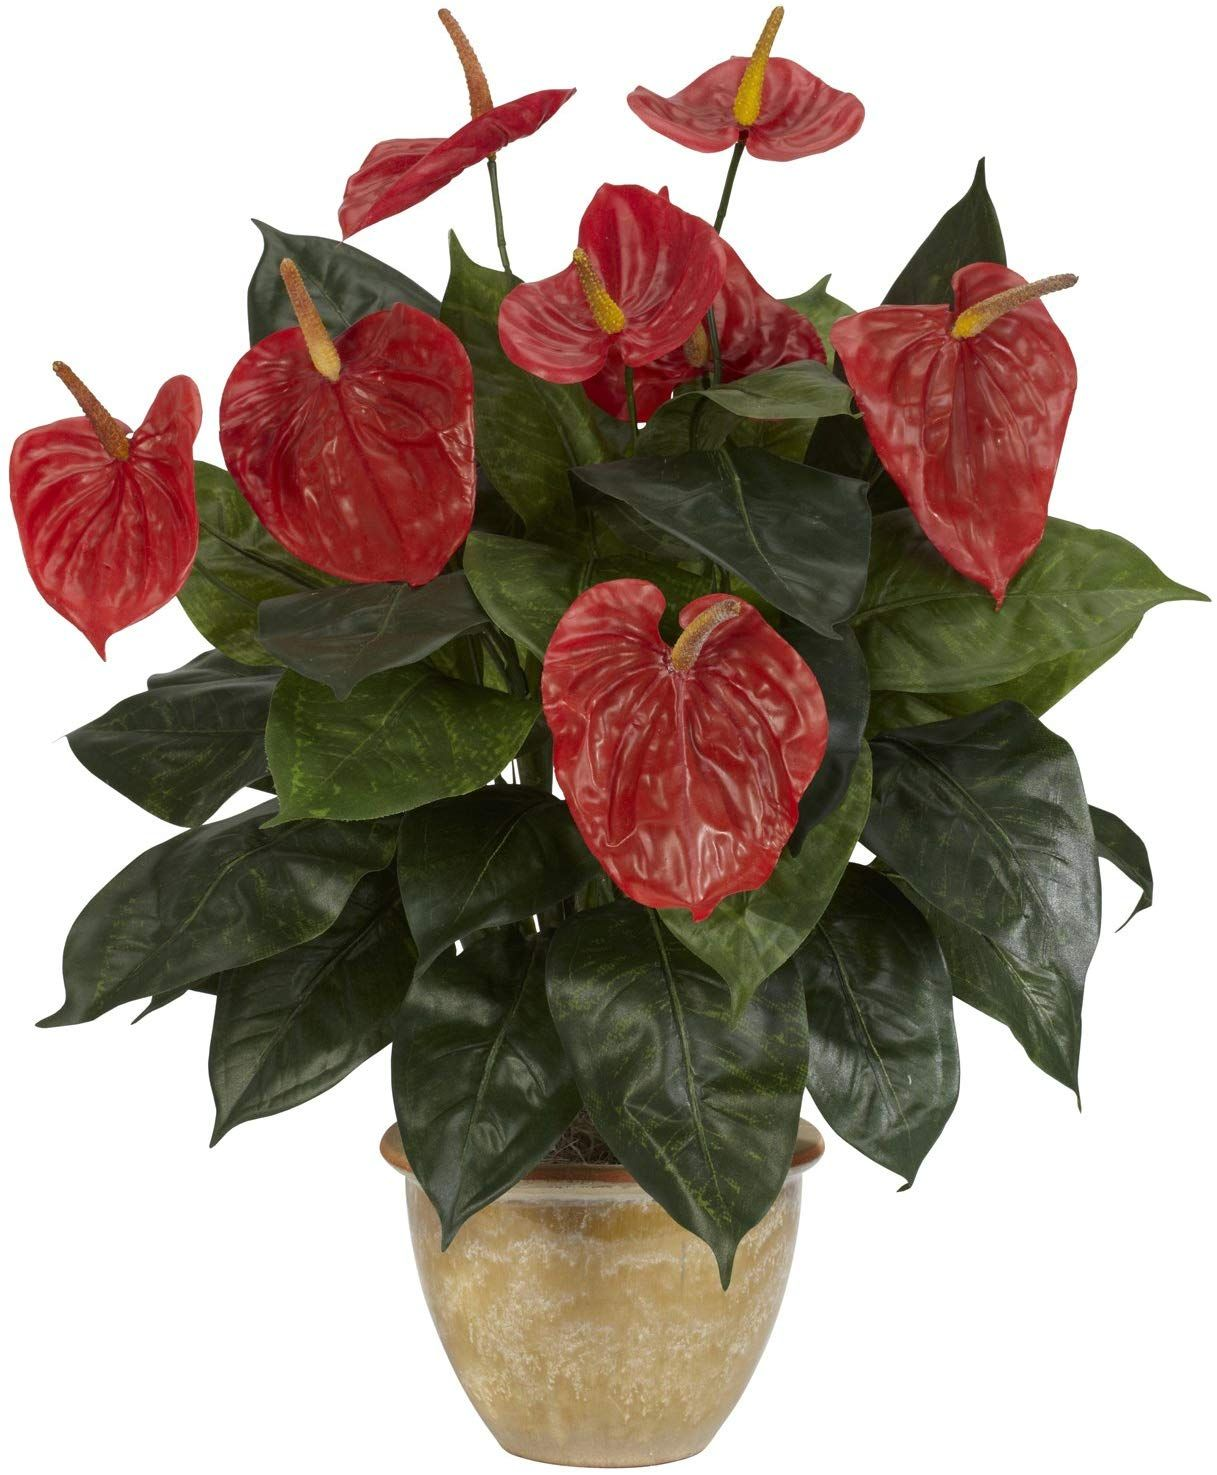 Outdoor Artificial Flowers 20 Best Fake Outdoor Flowers 2020 In 2020 Anthurium Plant Silk Plants Plants